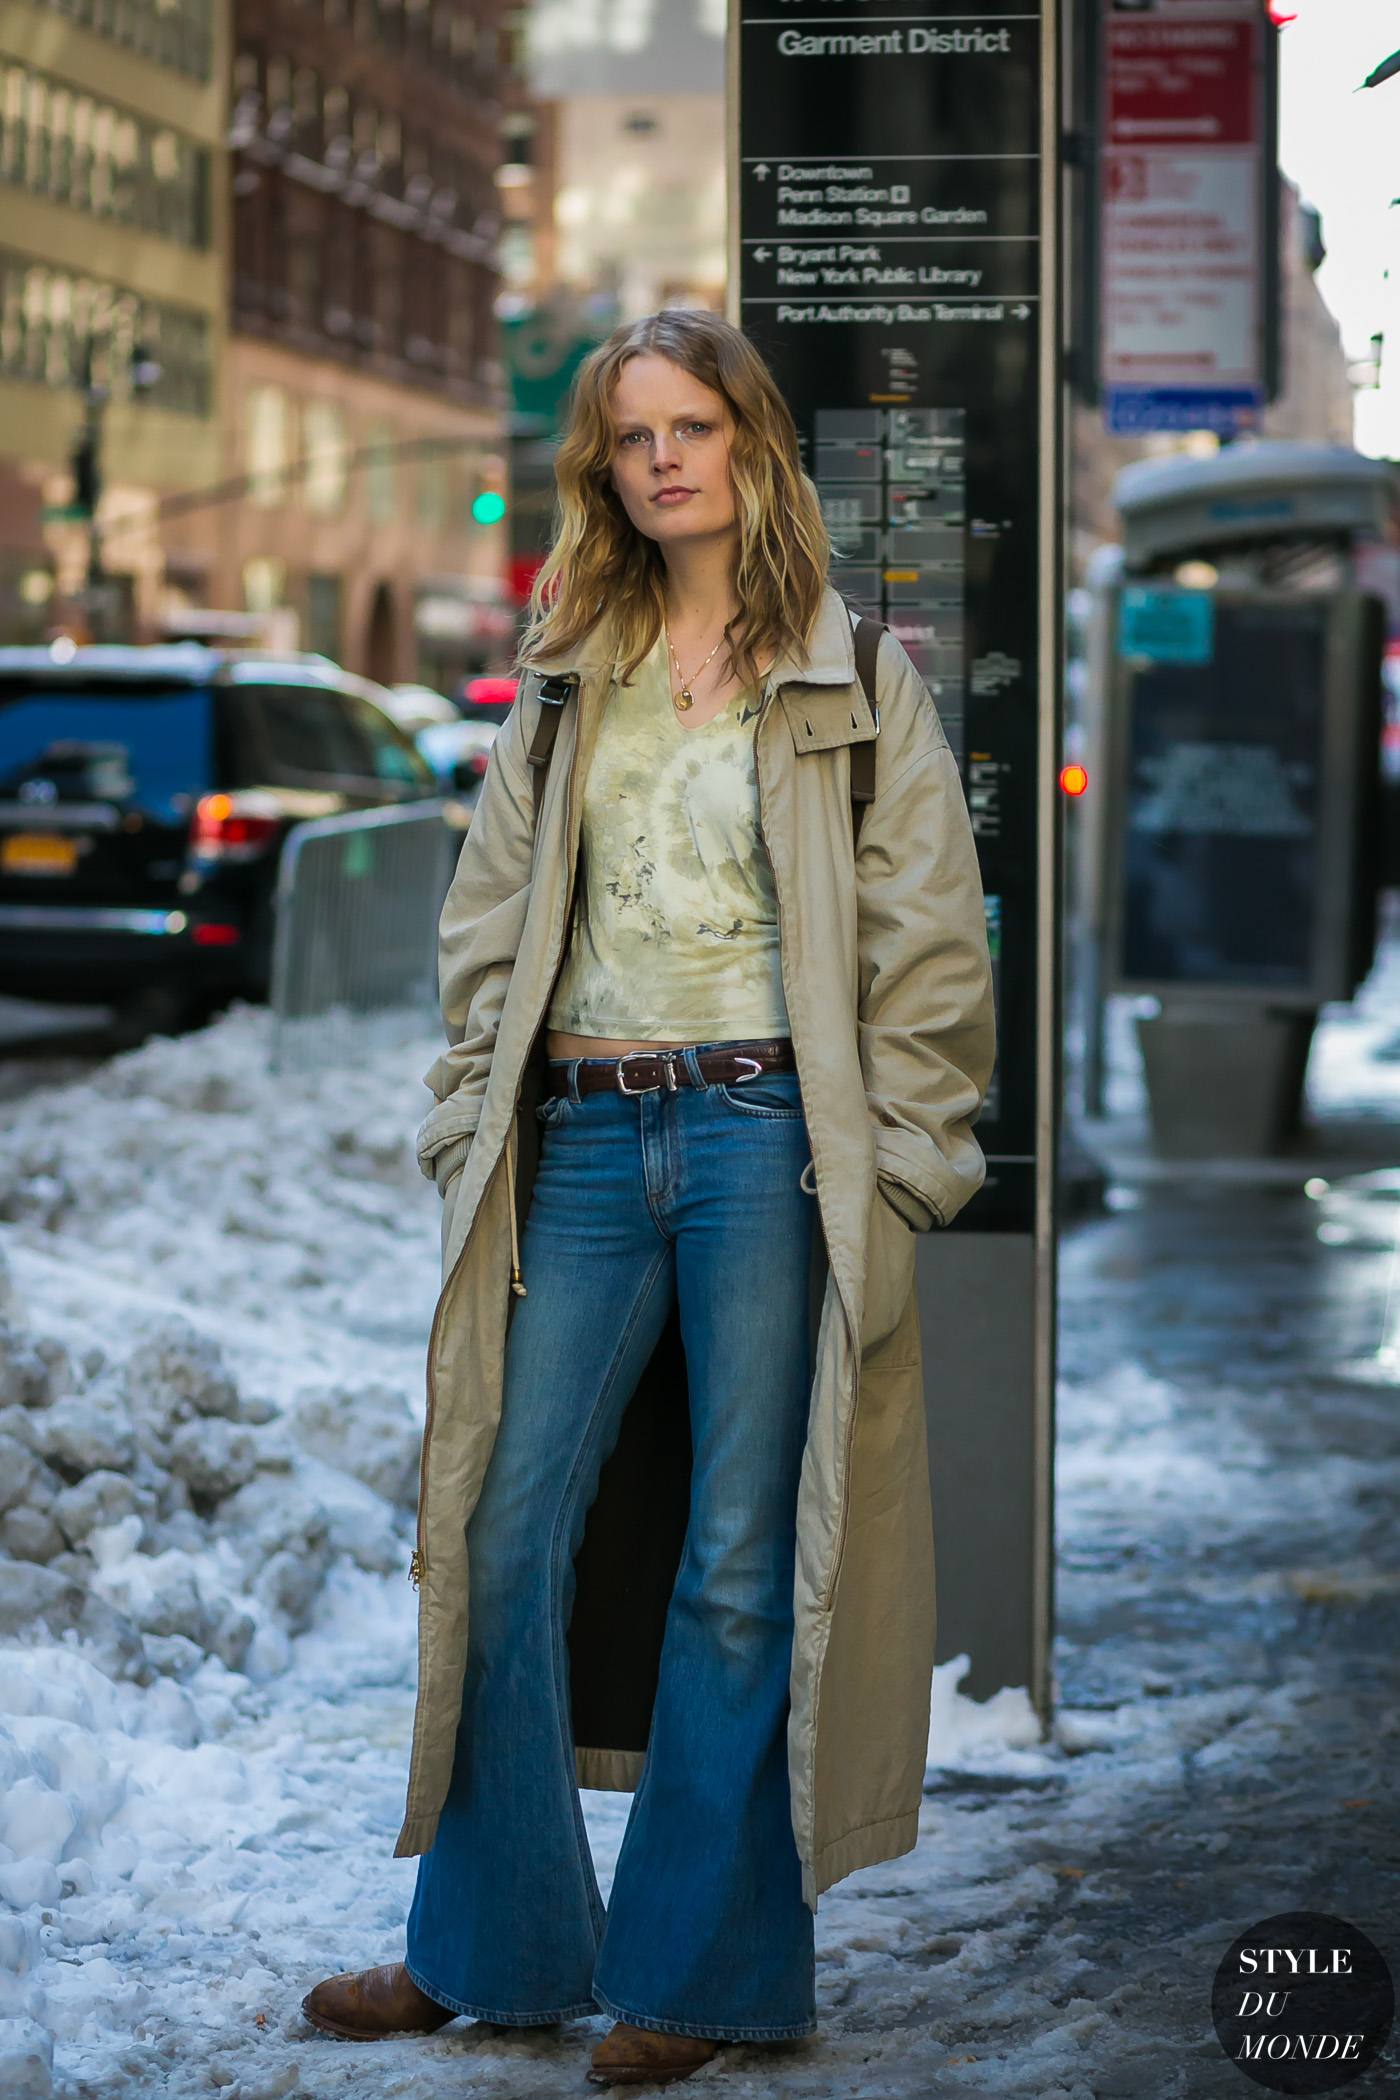 Hanne Gaby Odiele by STYLEDUMONDE Street Style Fashion Photography0E2A8006